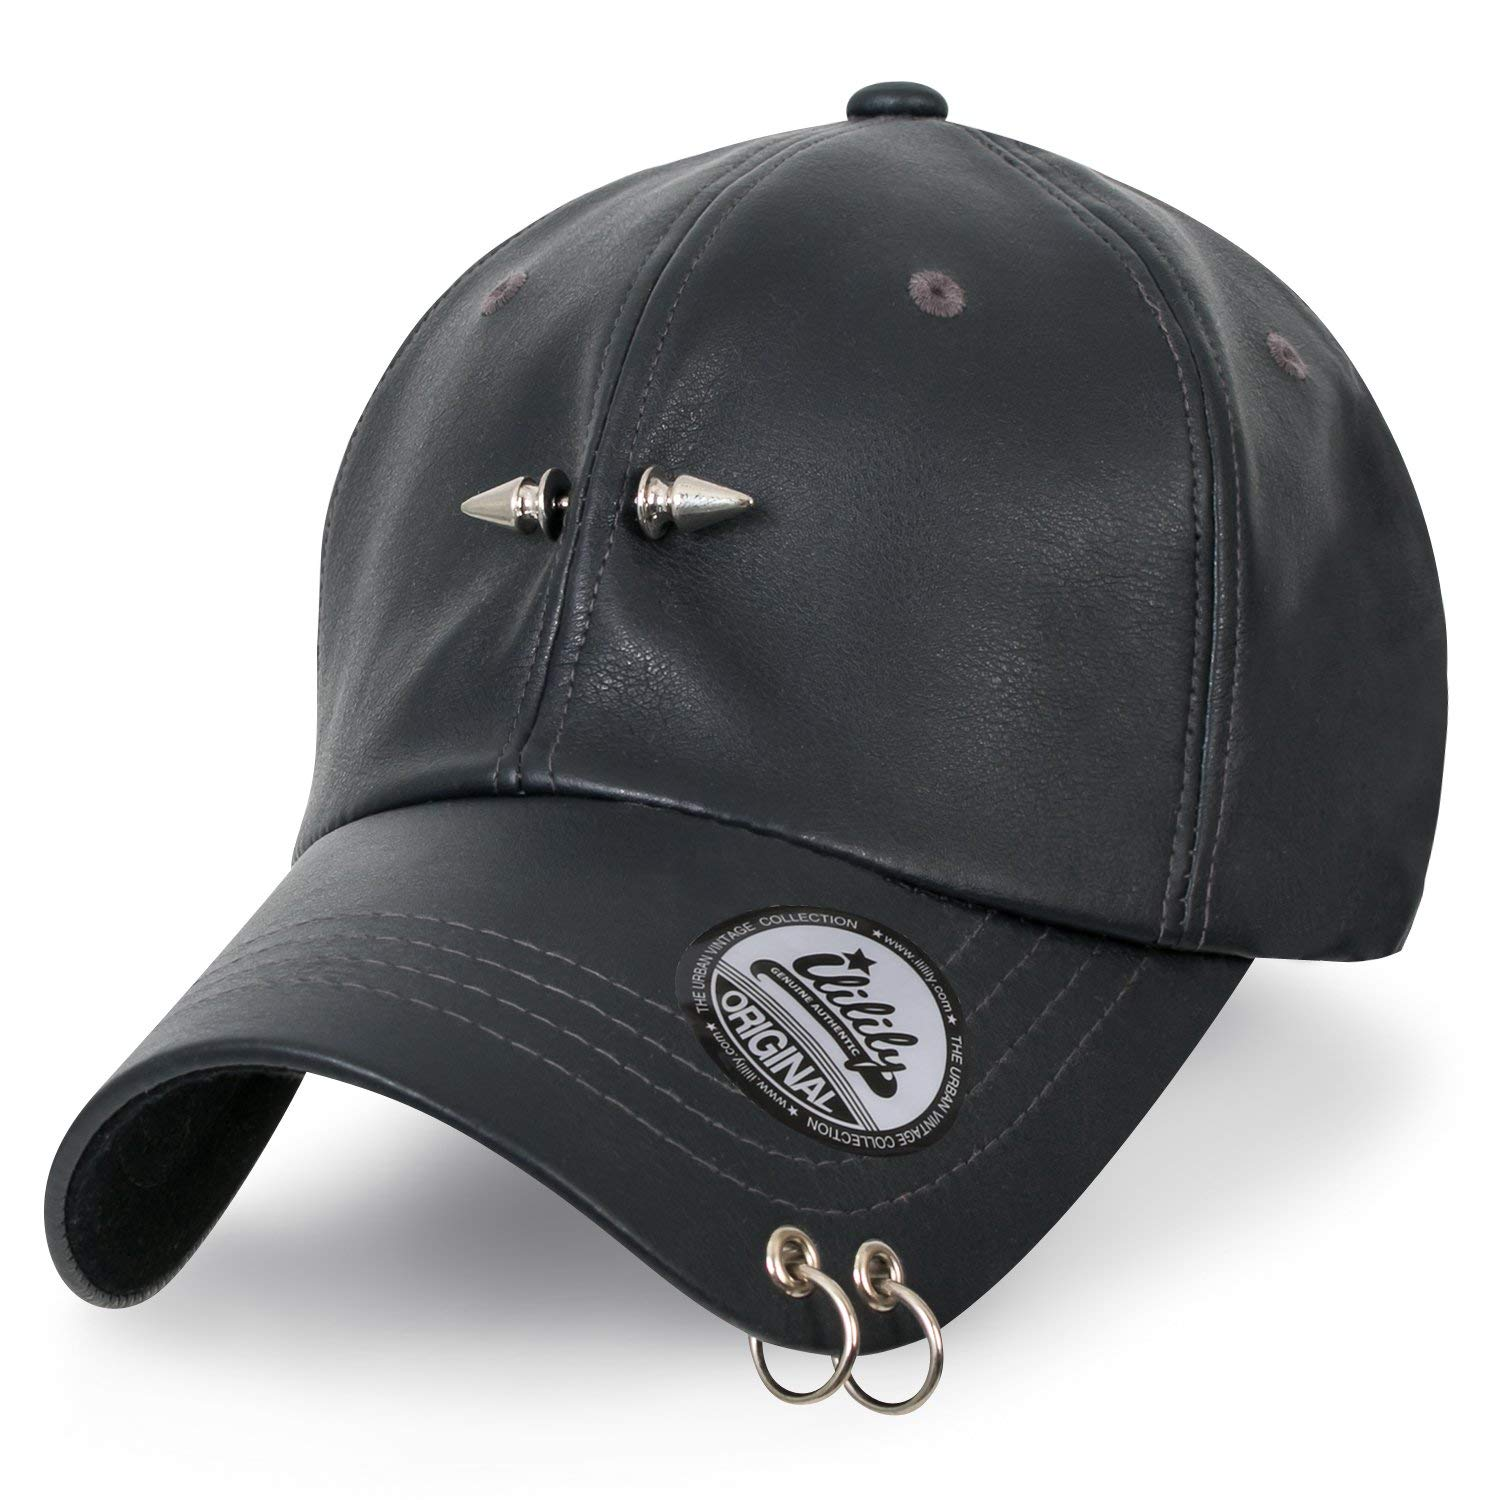 2c955ac92c5 Get Quotations · ililily Piercing Barbell Clip Ring Faux Leather Studded  Baseball Strap Cap Hat